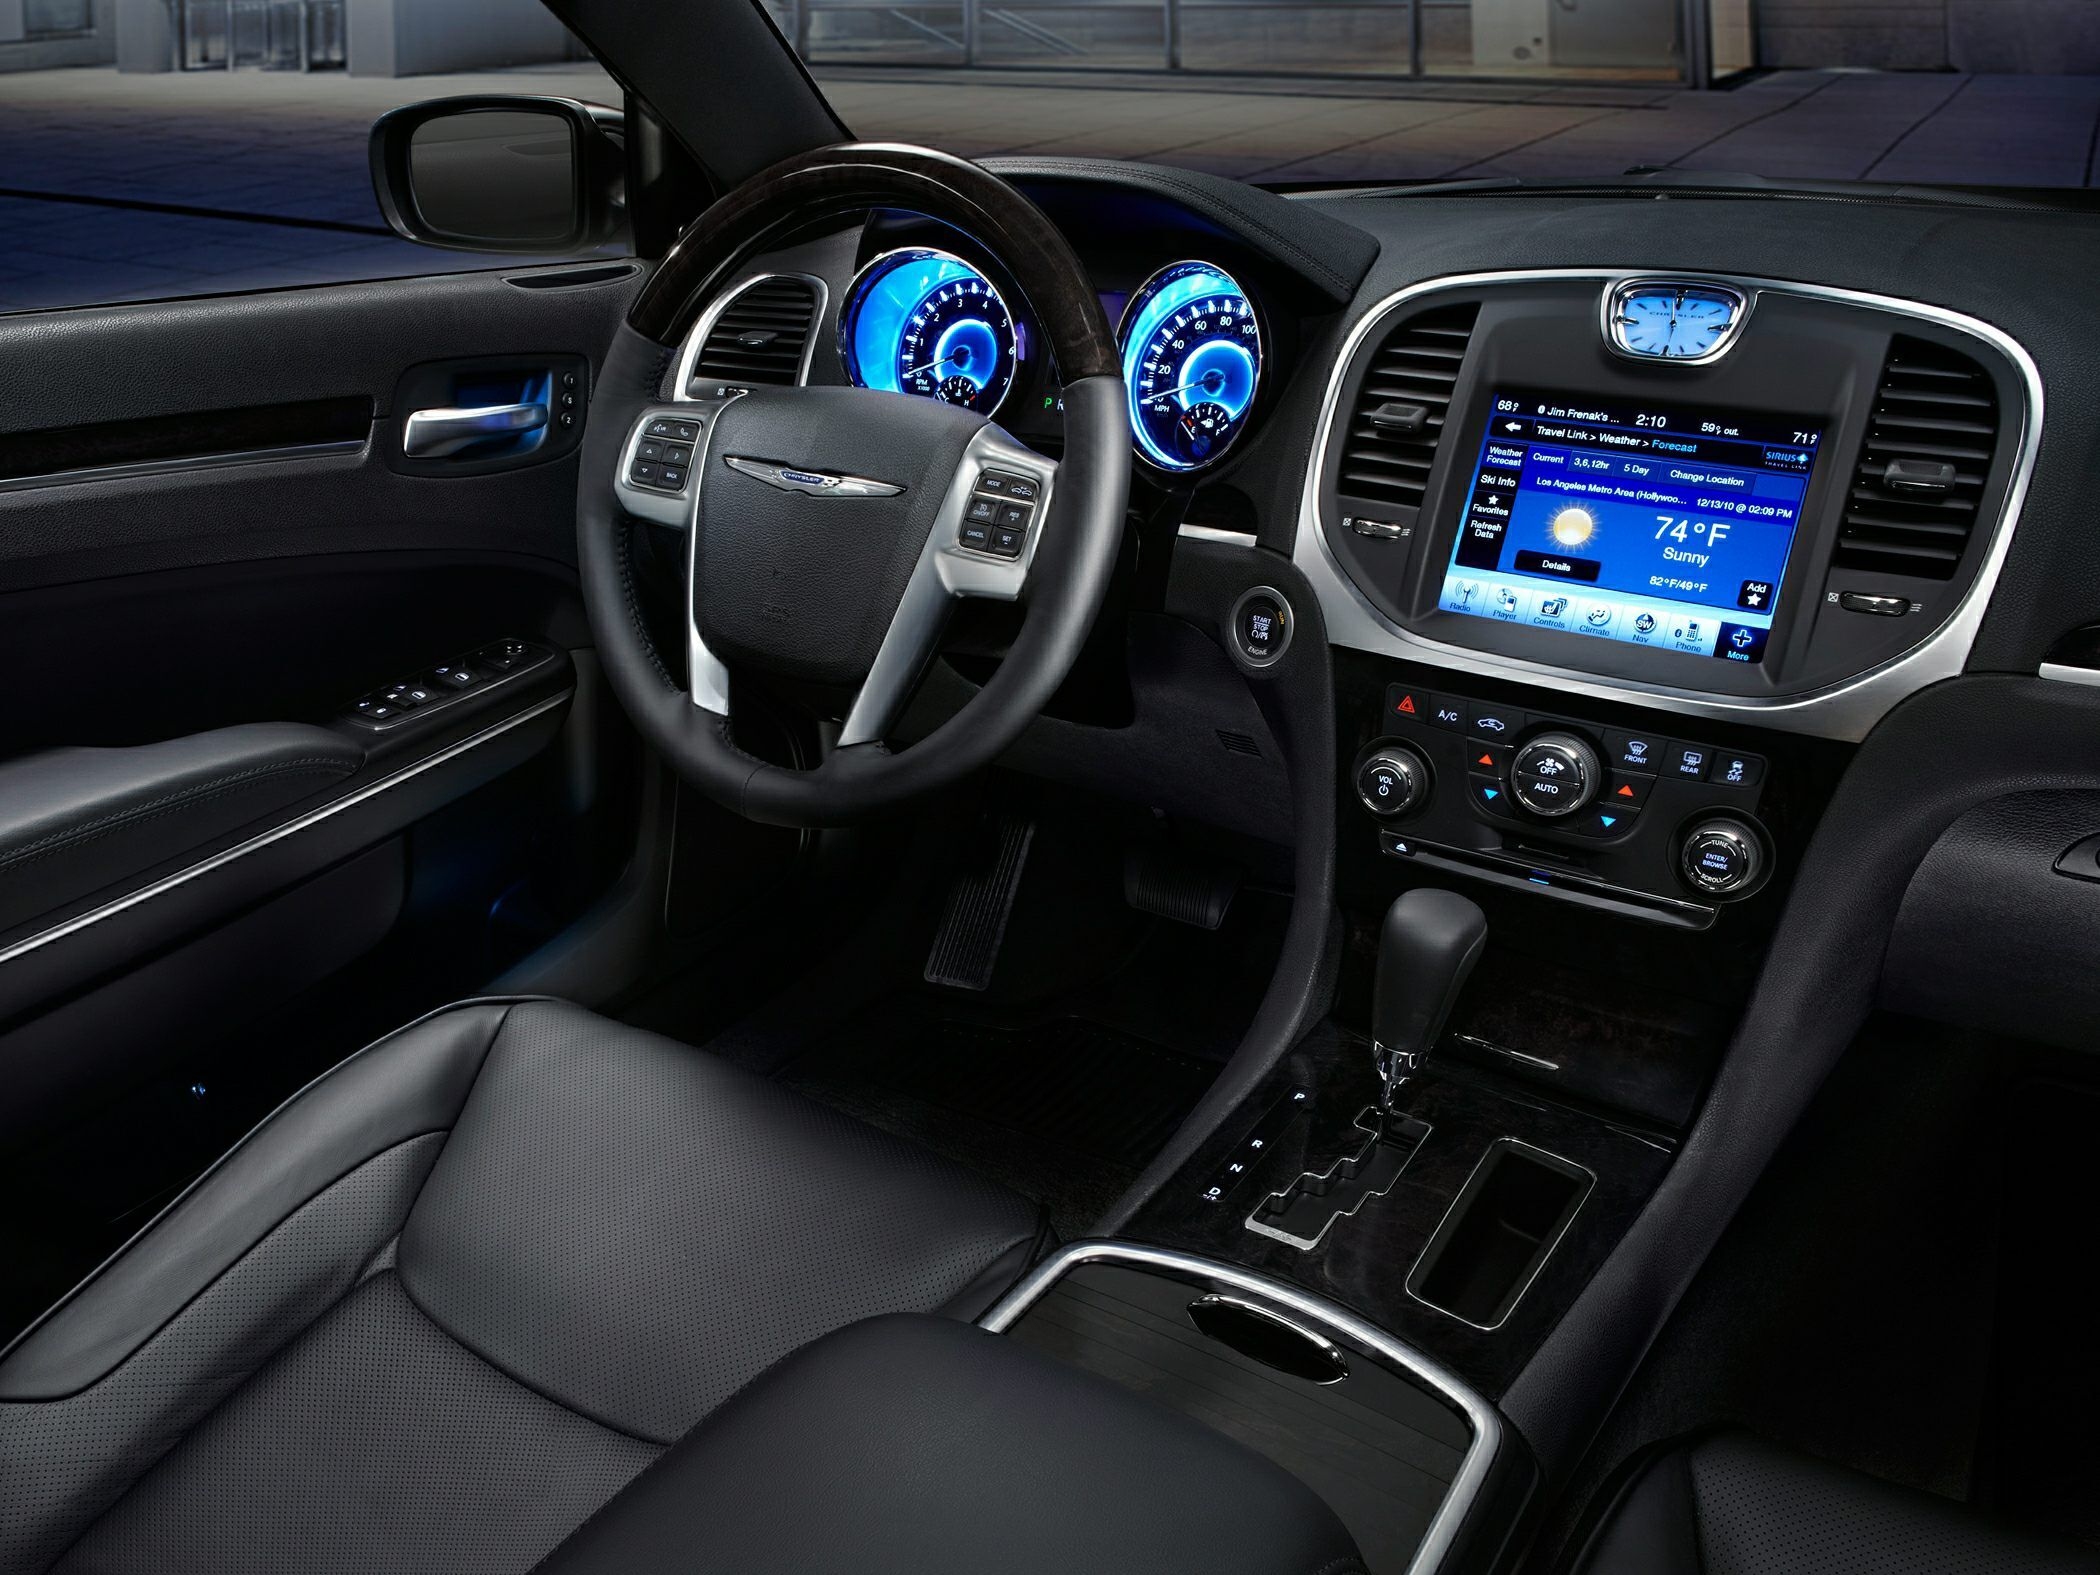 2016 Chrysler 300 - Interior